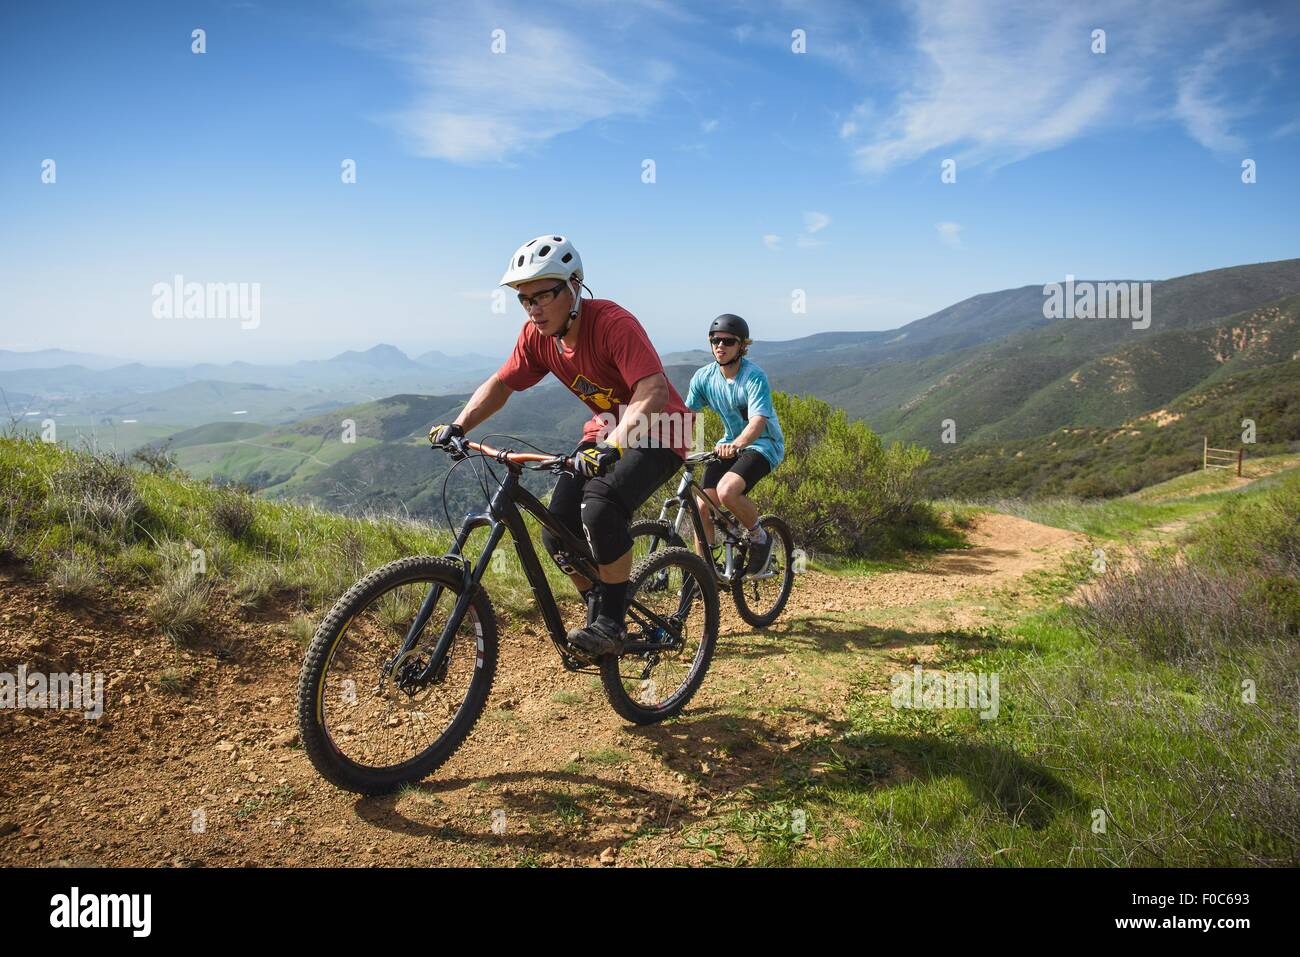 Cyclists mountain biking, San Luis Obispo, California, United States of America - Stock Image